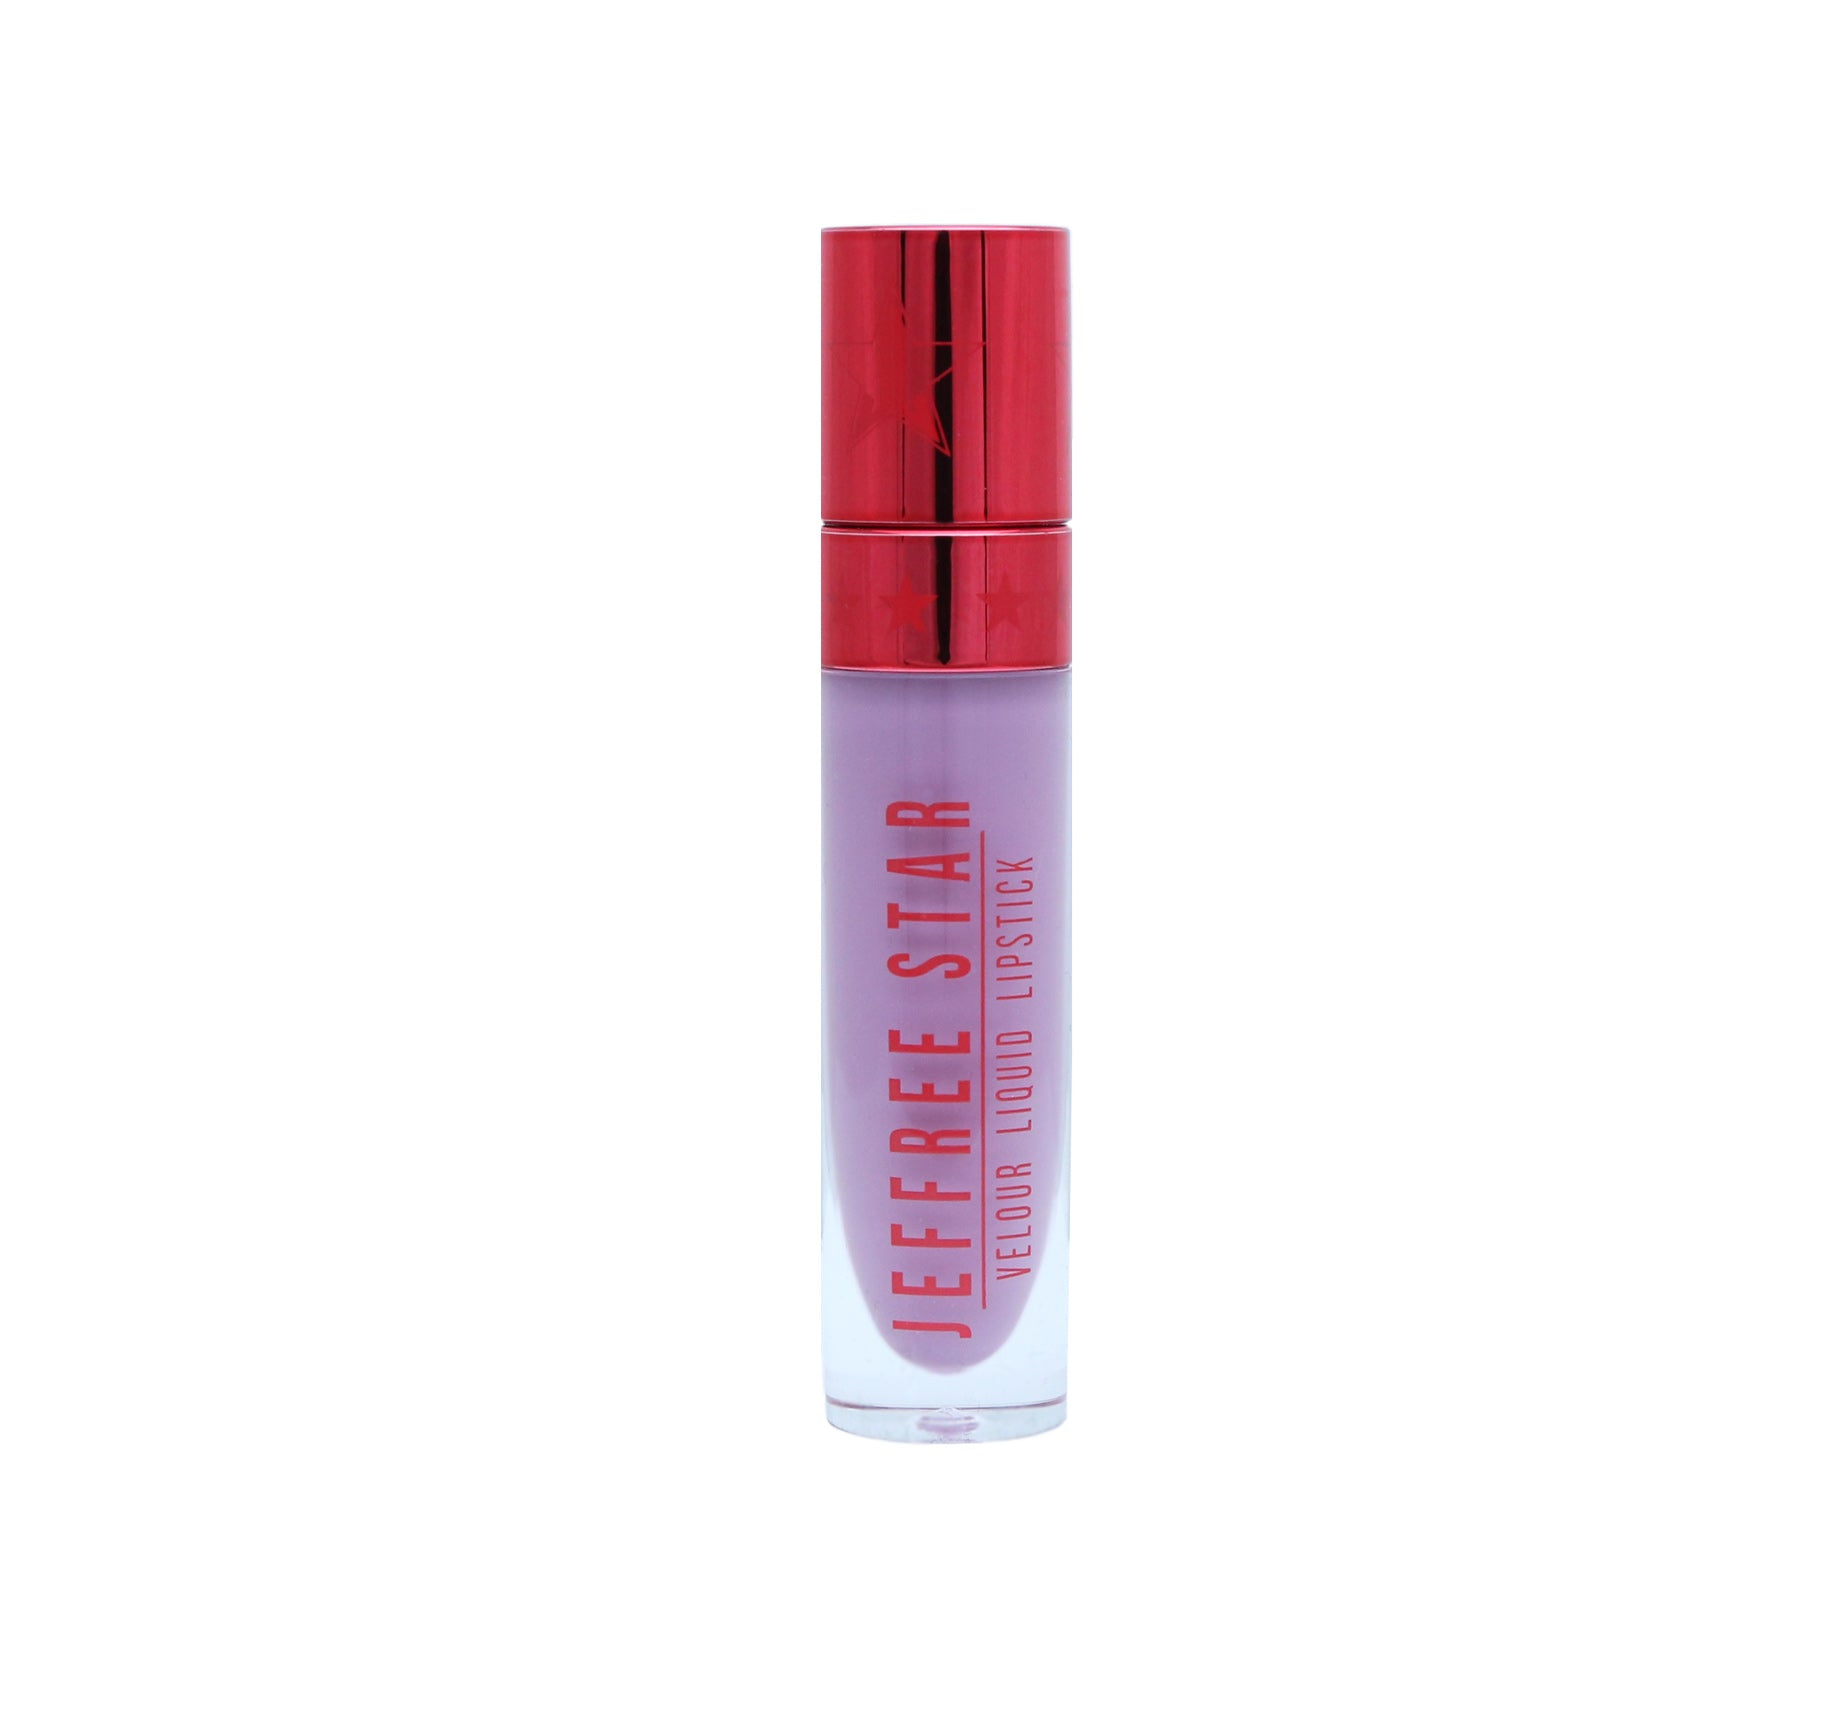 VELOUR LIQUID LIPSTICK - SELF CONTROL, view larger image